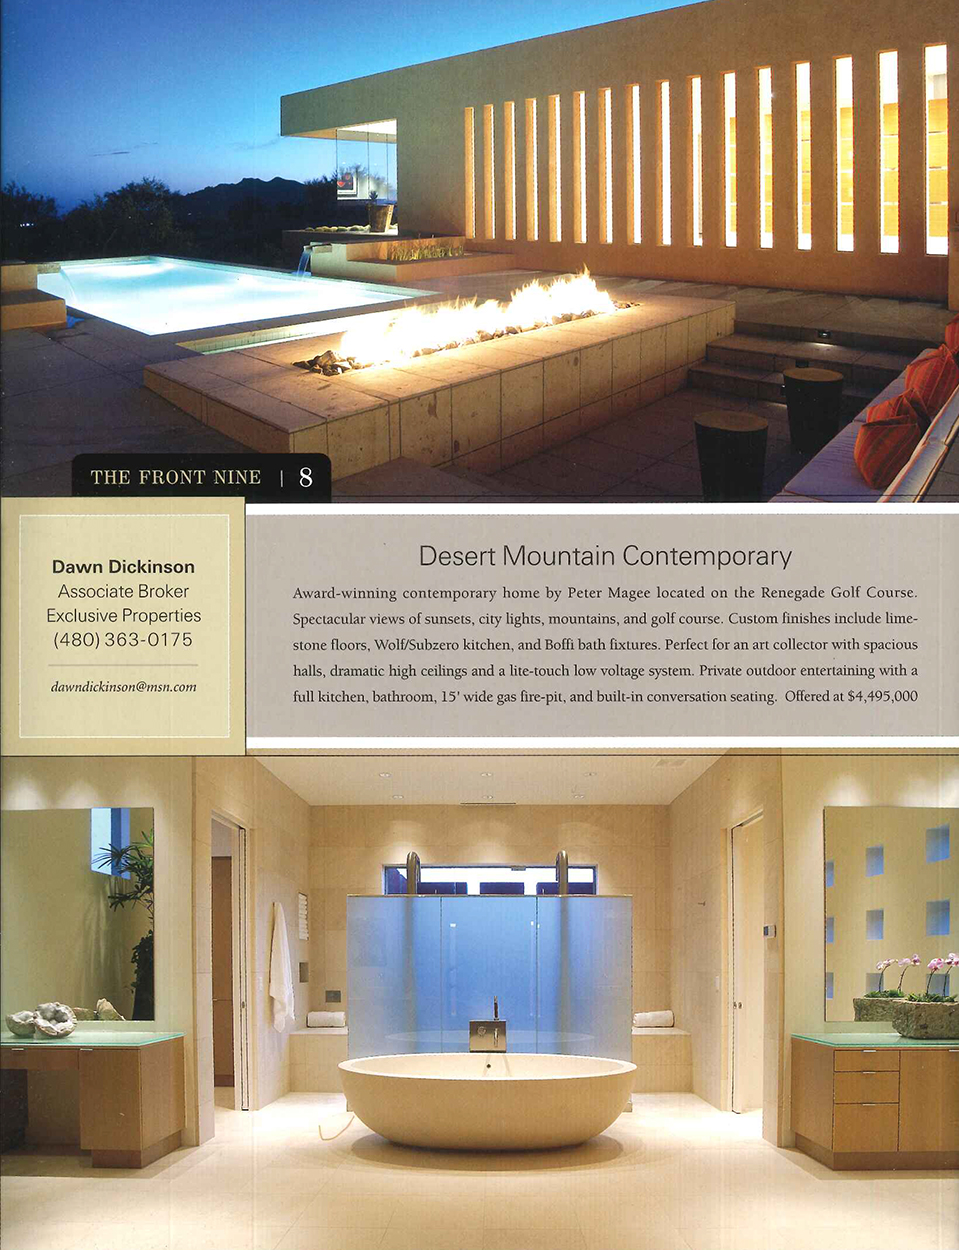 Desert Mountain Contemporary article